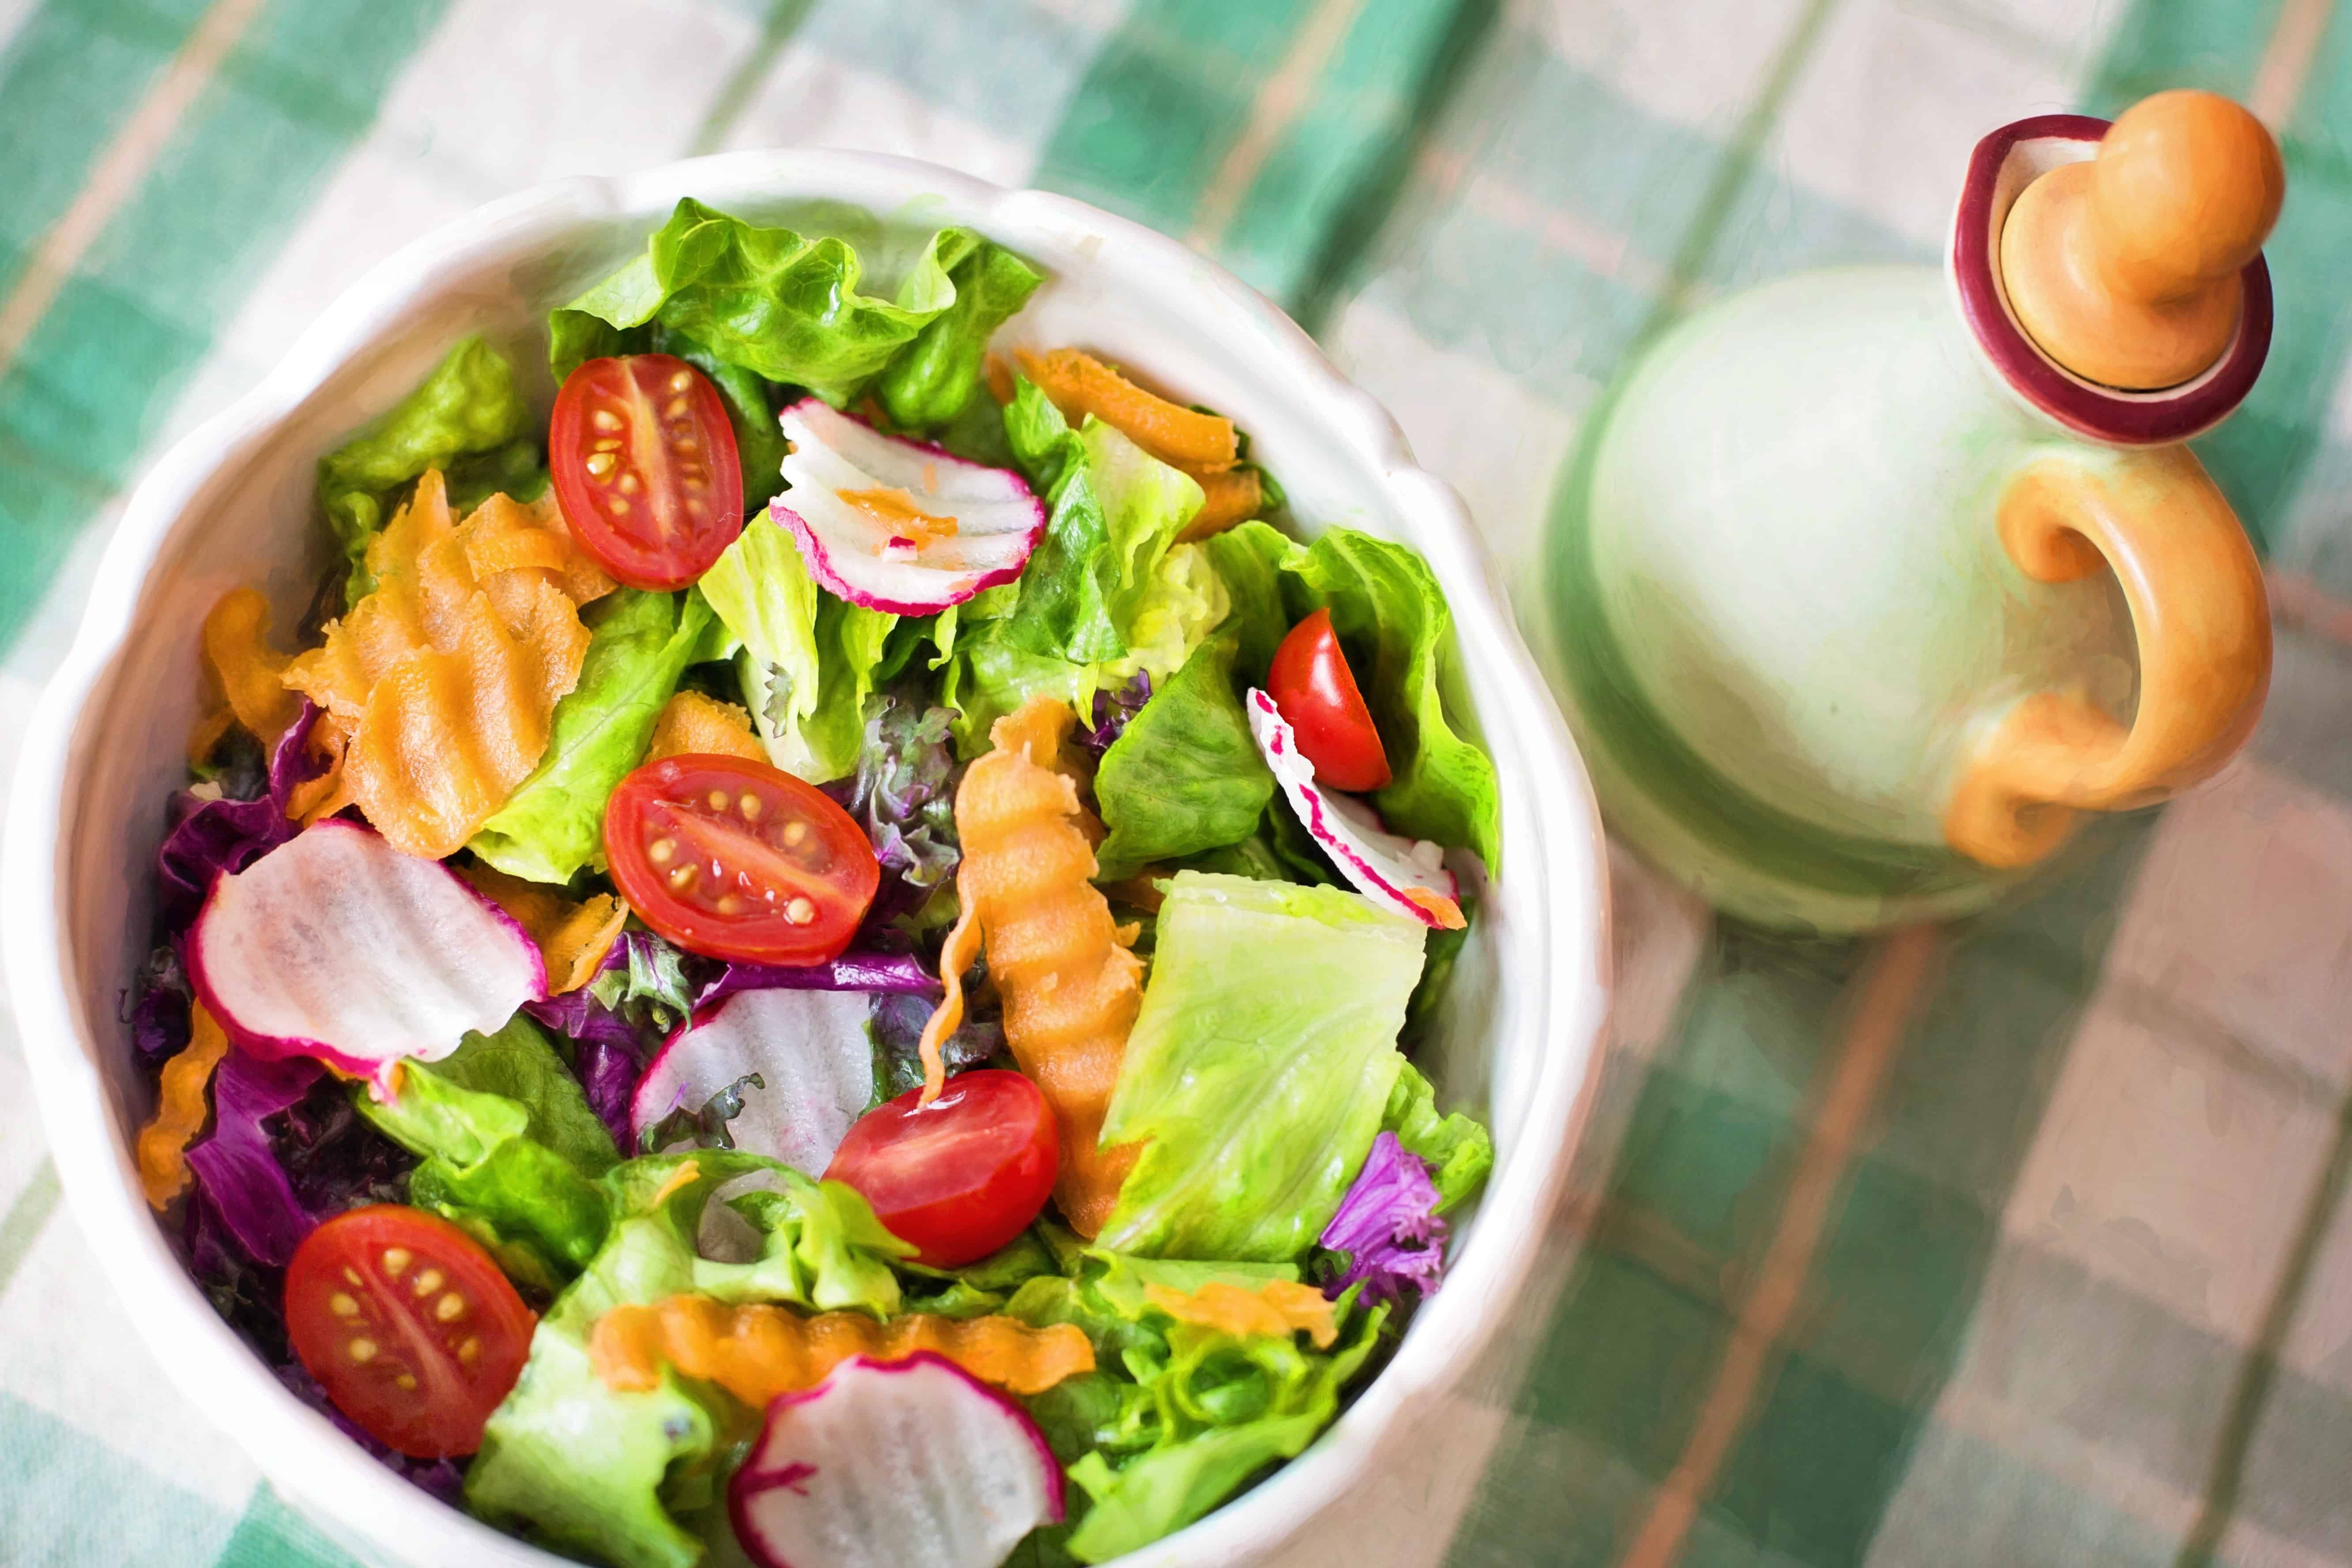 Vegetarian diet is healthy and cheap